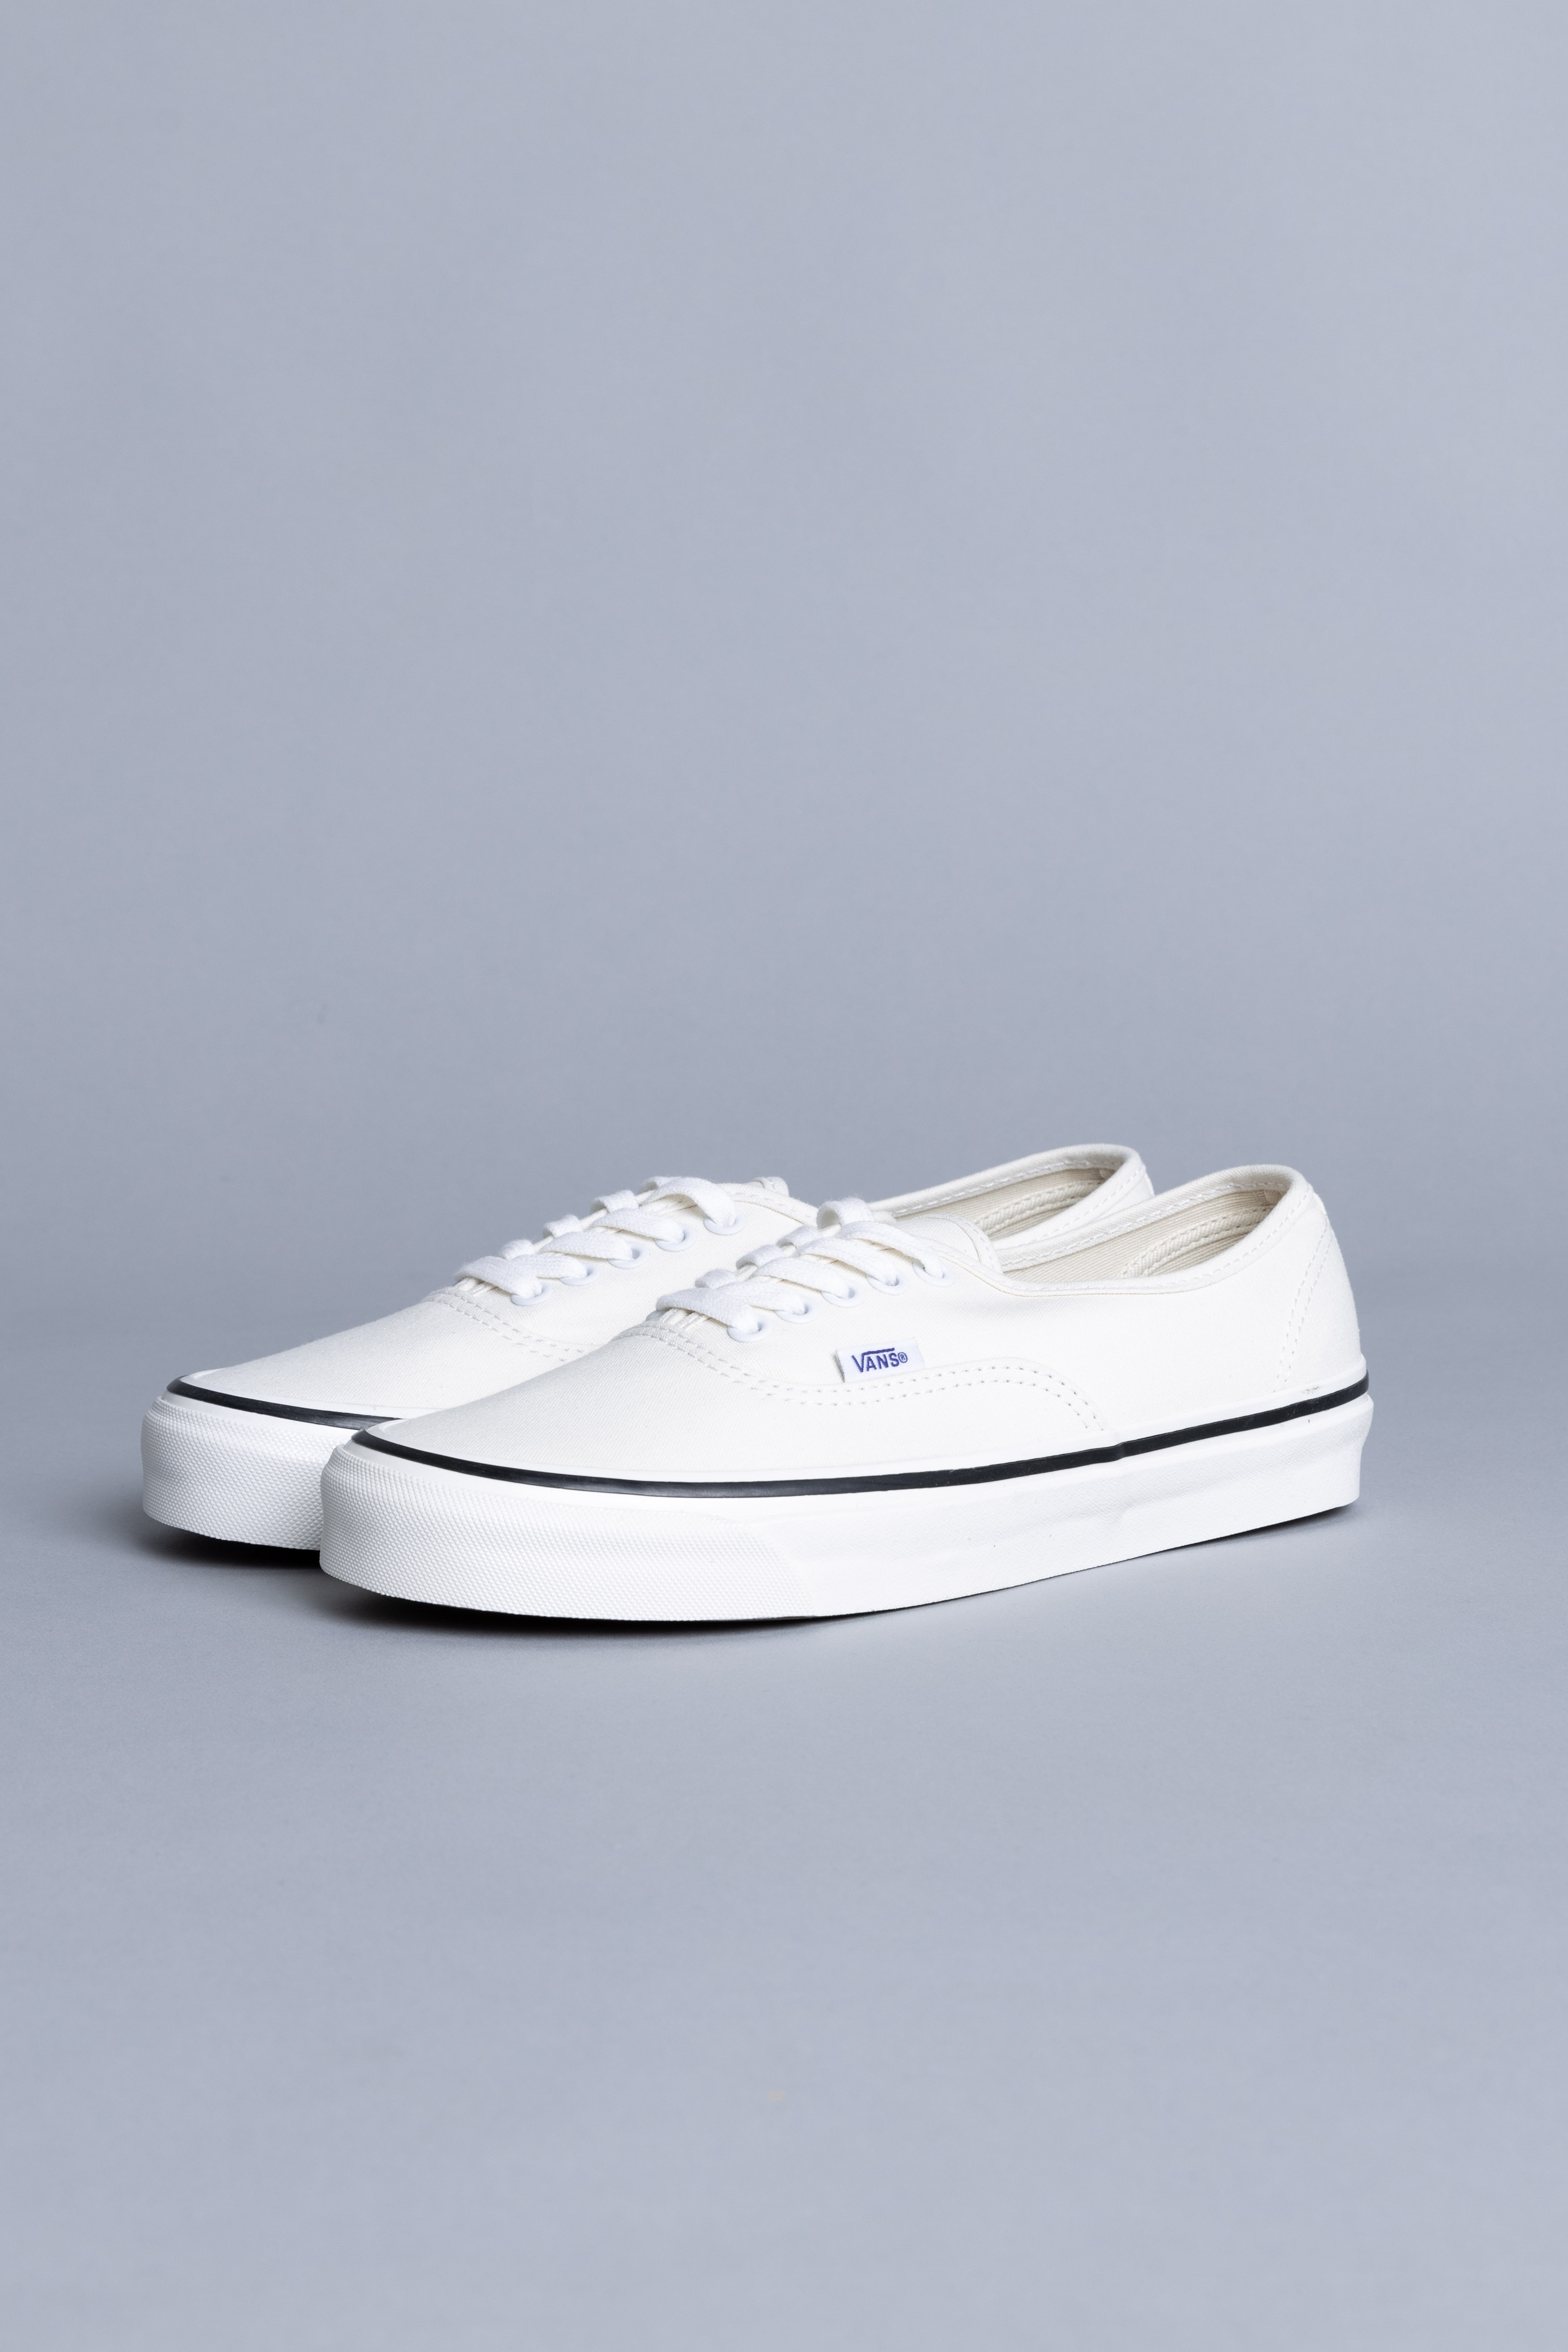 rutina asesino Ardiente  Vans Authentic 44 DX white sale - Centrevillestore